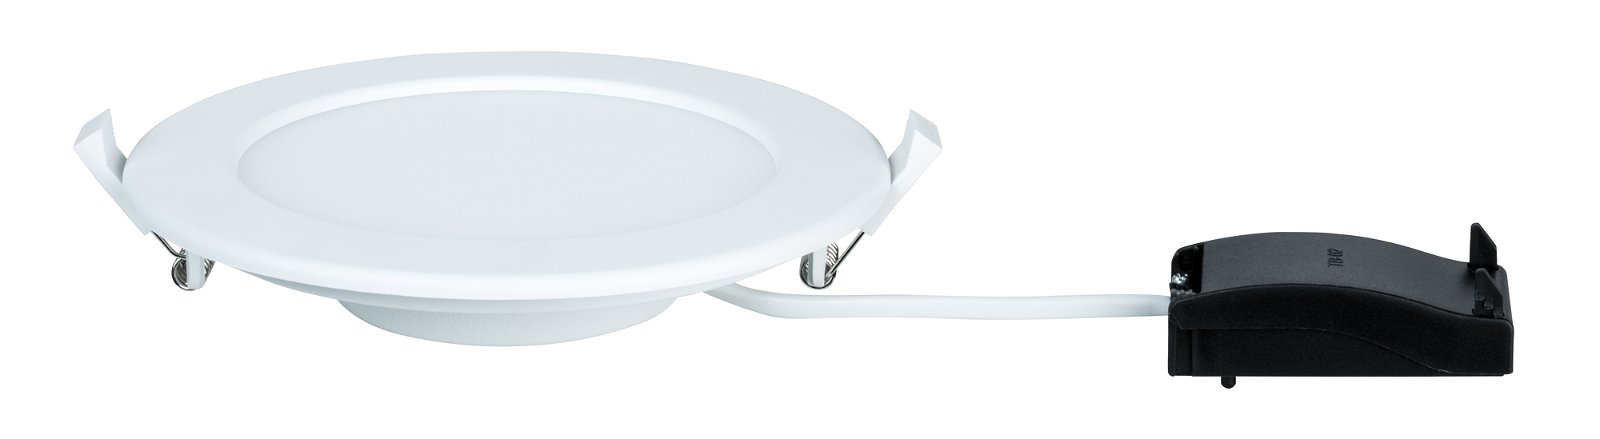 LED Recessed panel IP44 round 170mm 1118lm 2700K White